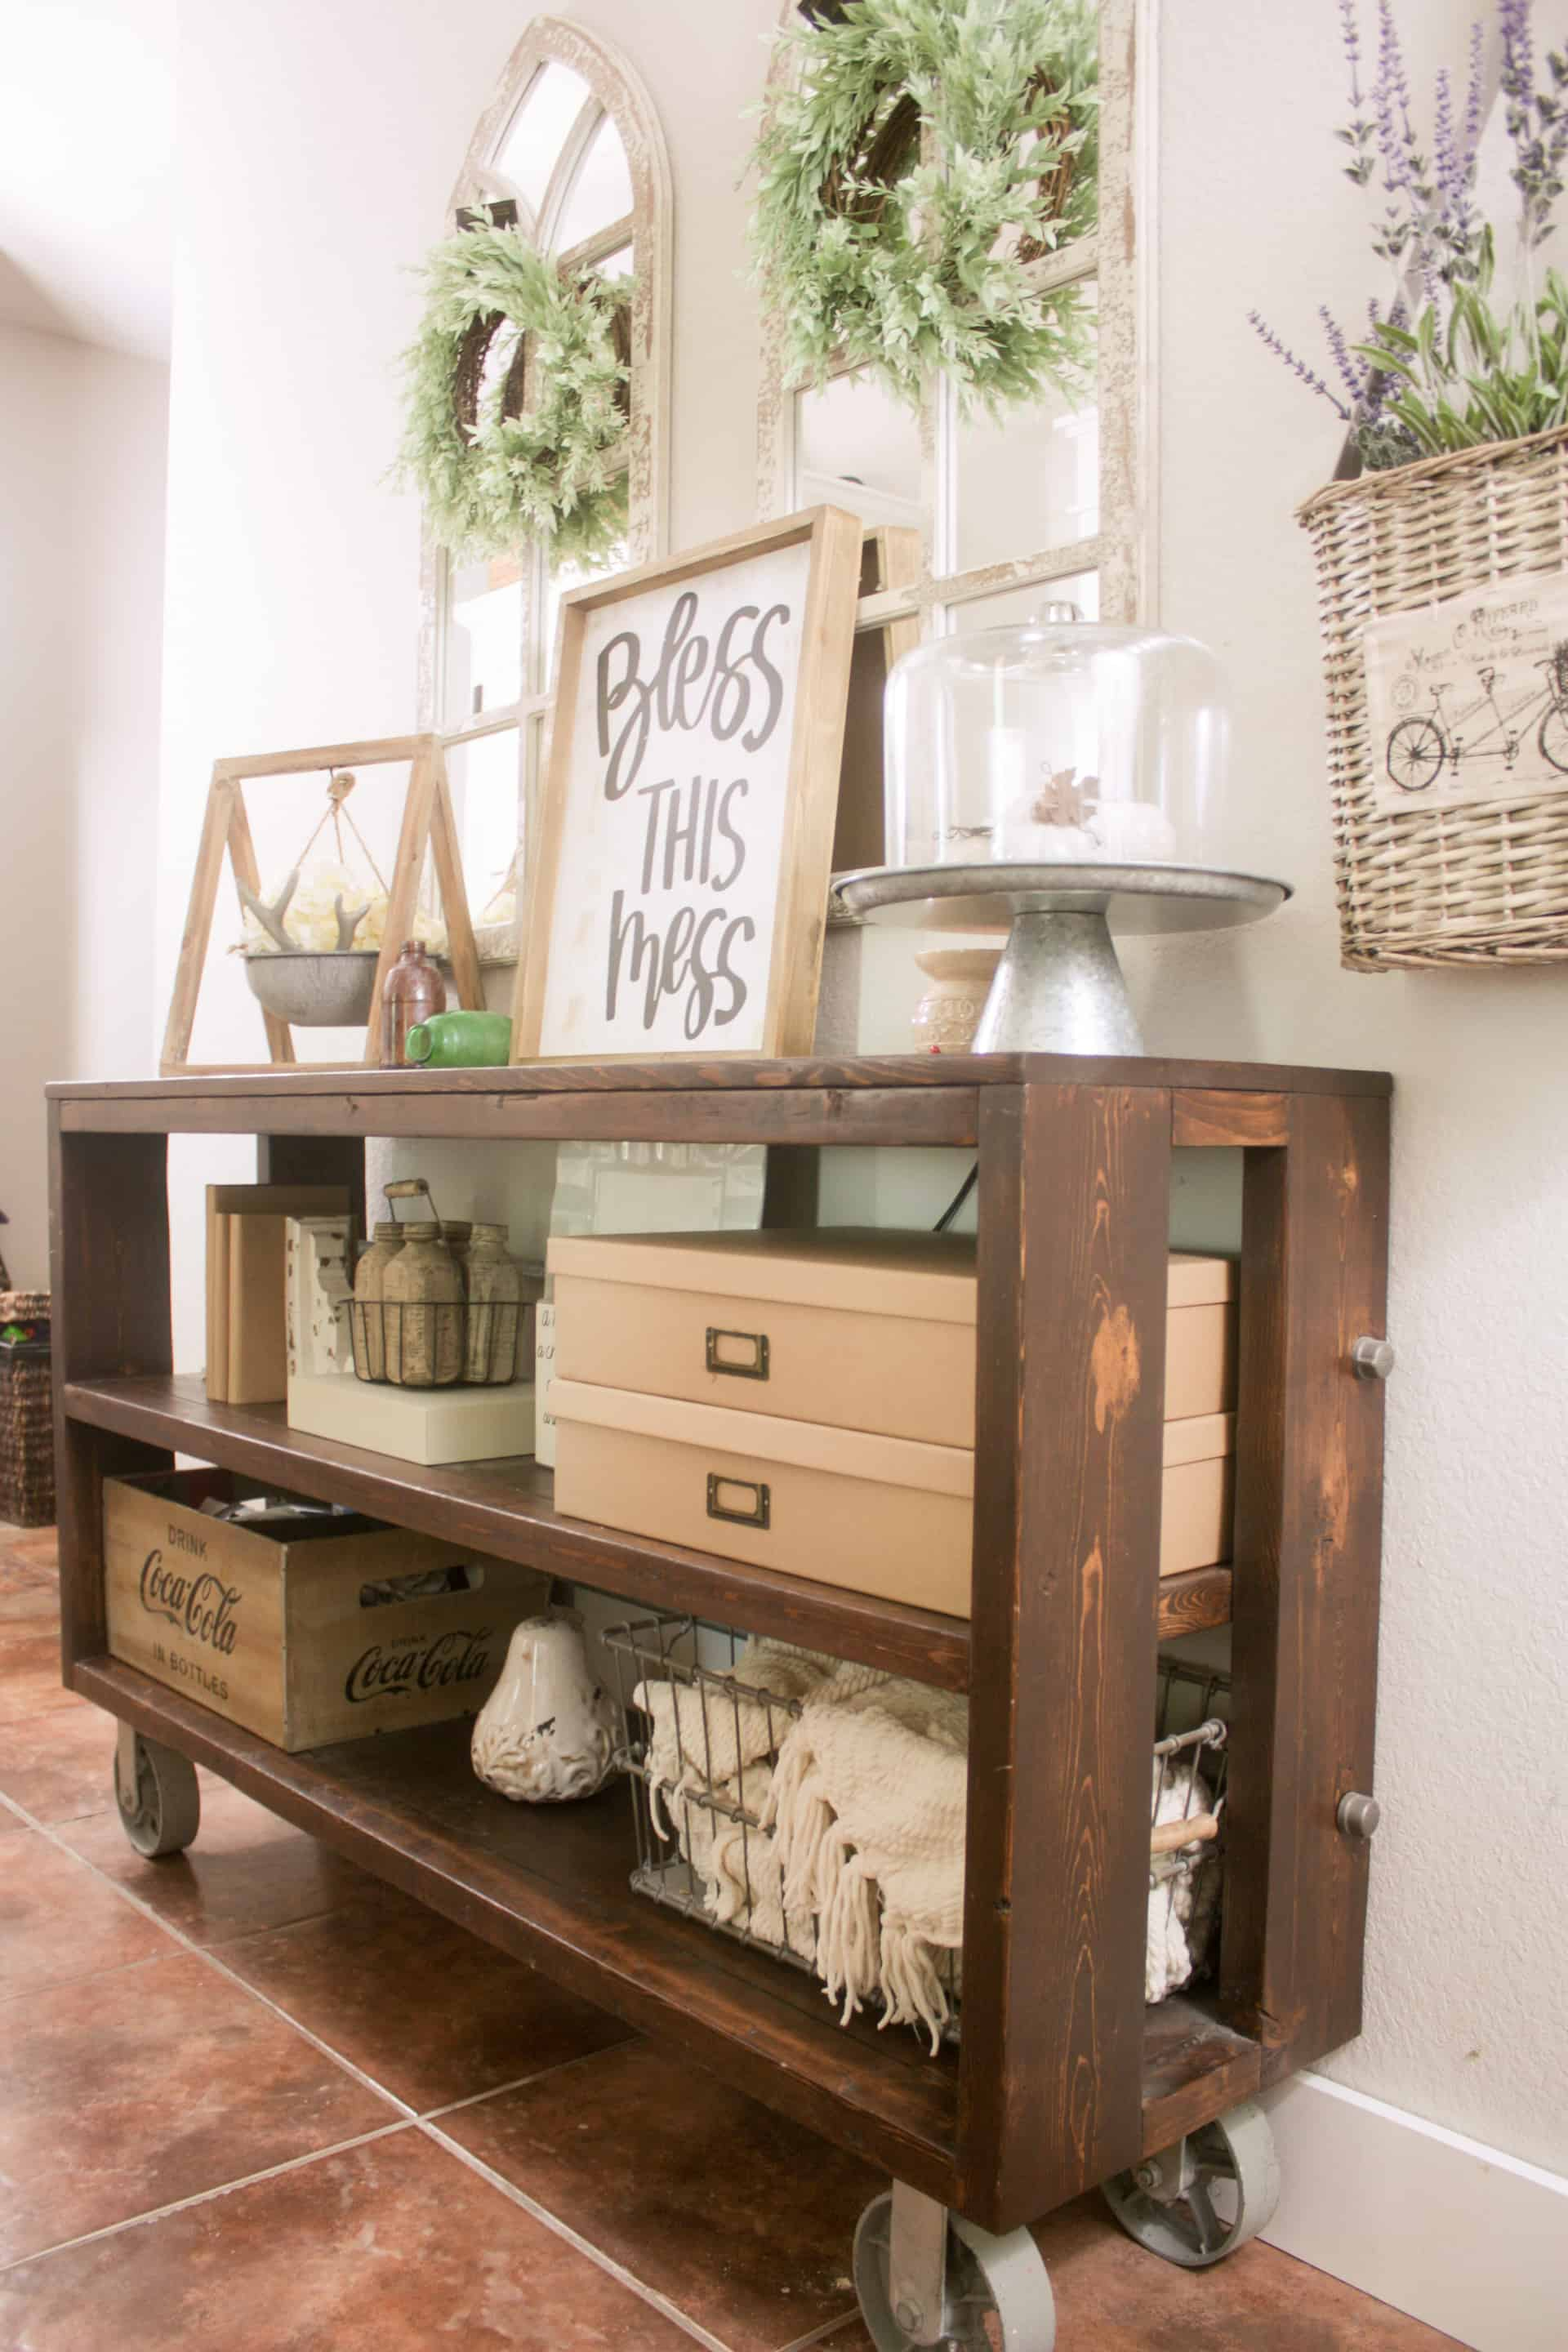 DIY Console Table with Casters